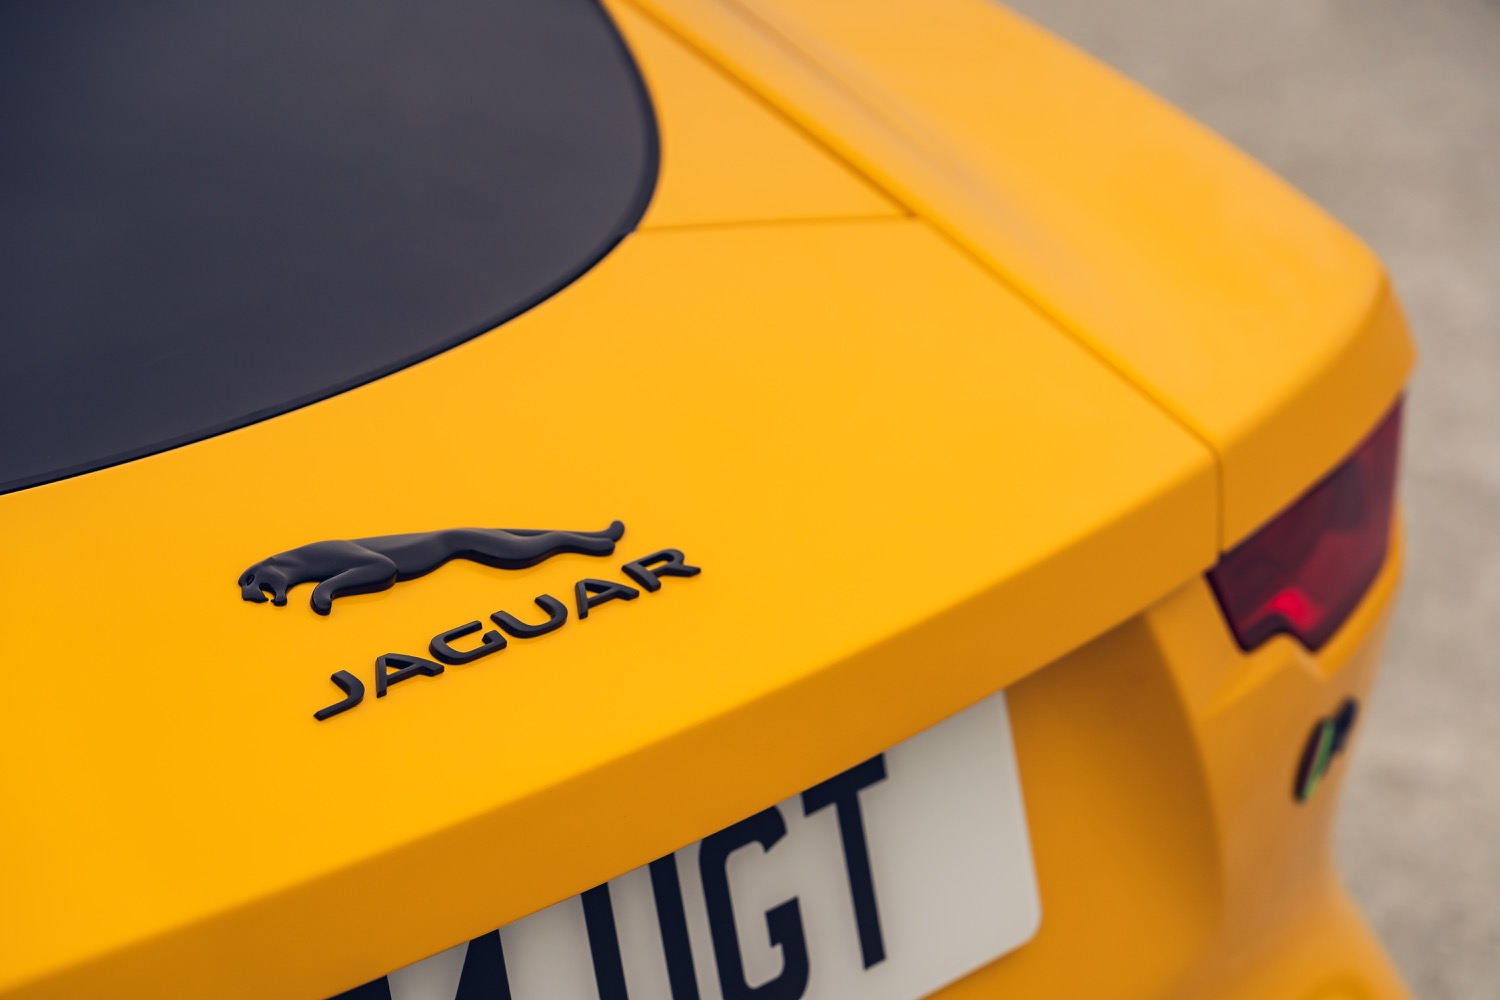 2020_jaguar_ftype_v8_awd_coupe_yellow_test_17